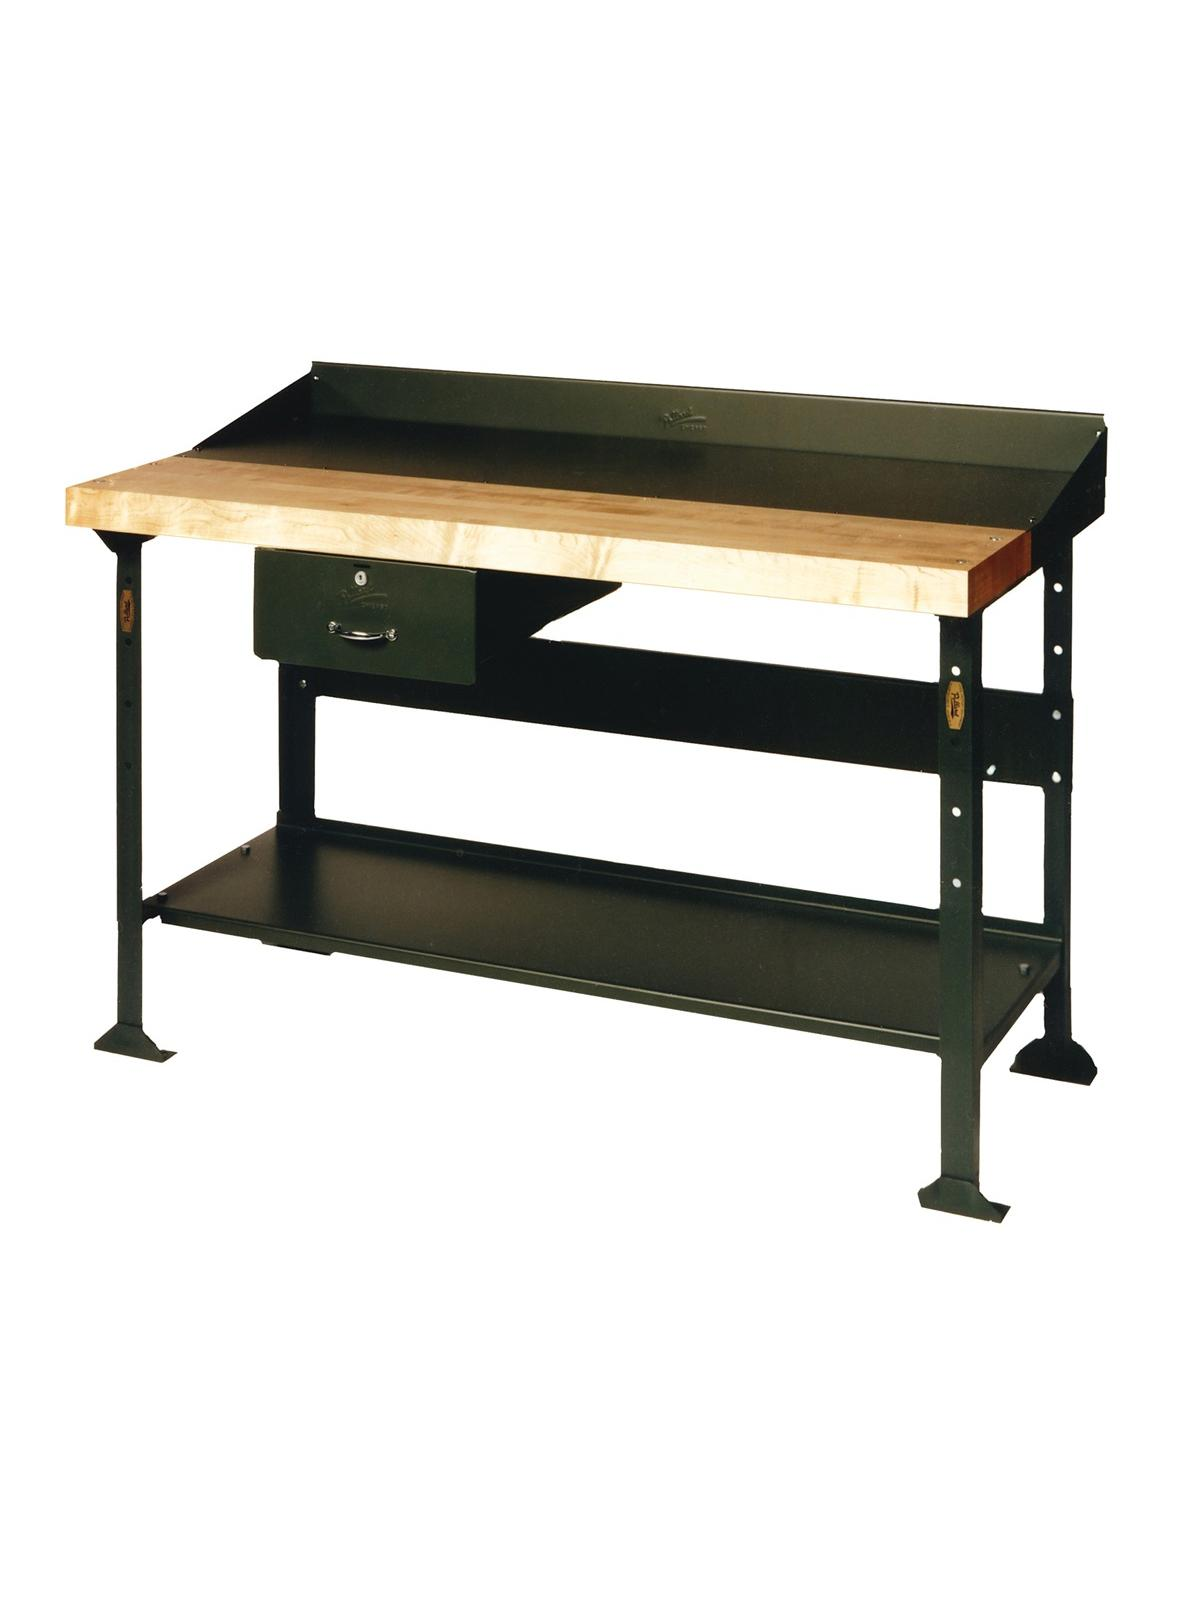 Steel Wood Work Bench At Nationwide Industrial Supply Llc